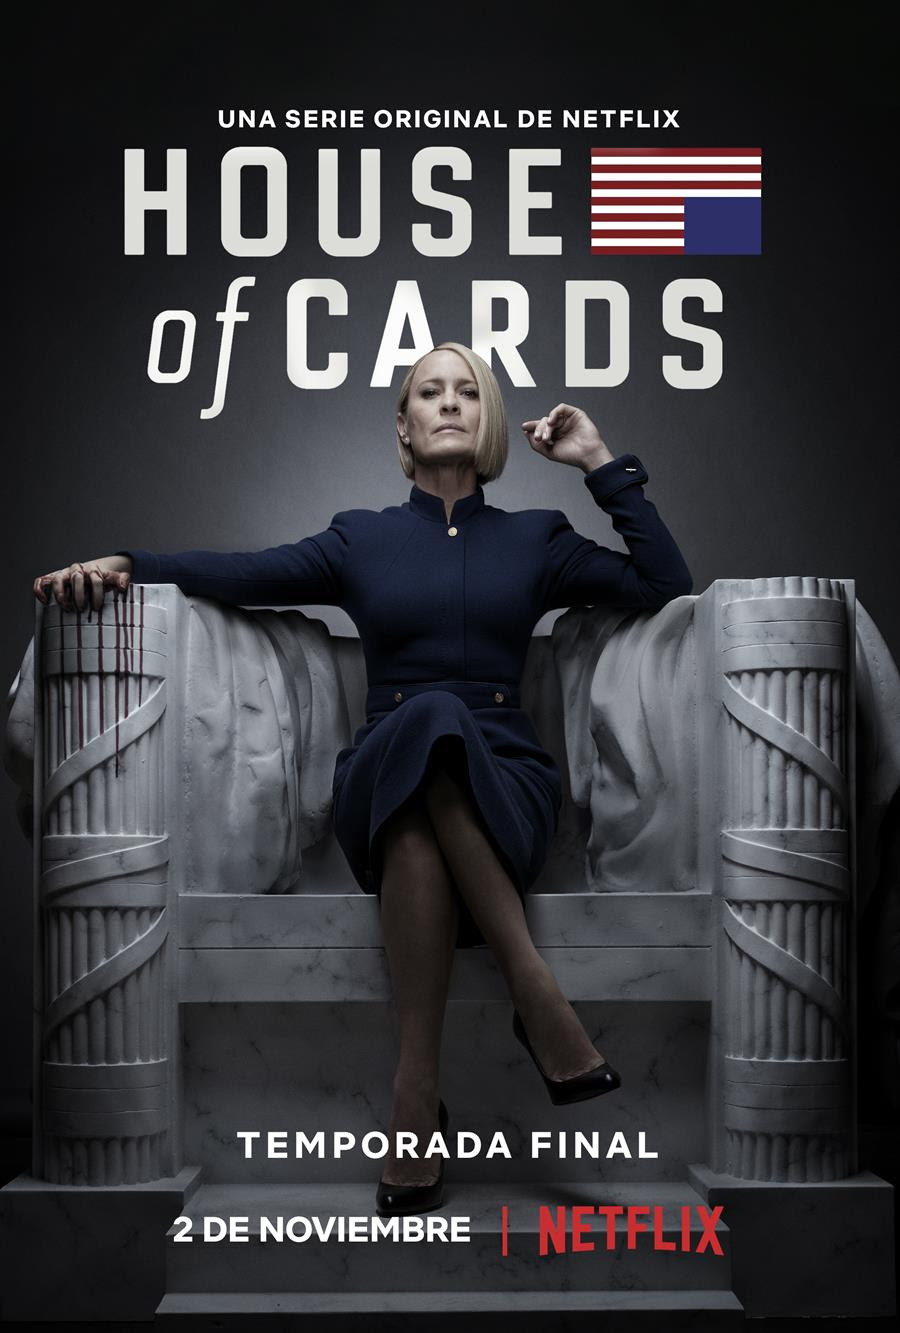 House of Cards Temporada final Poster.jpg